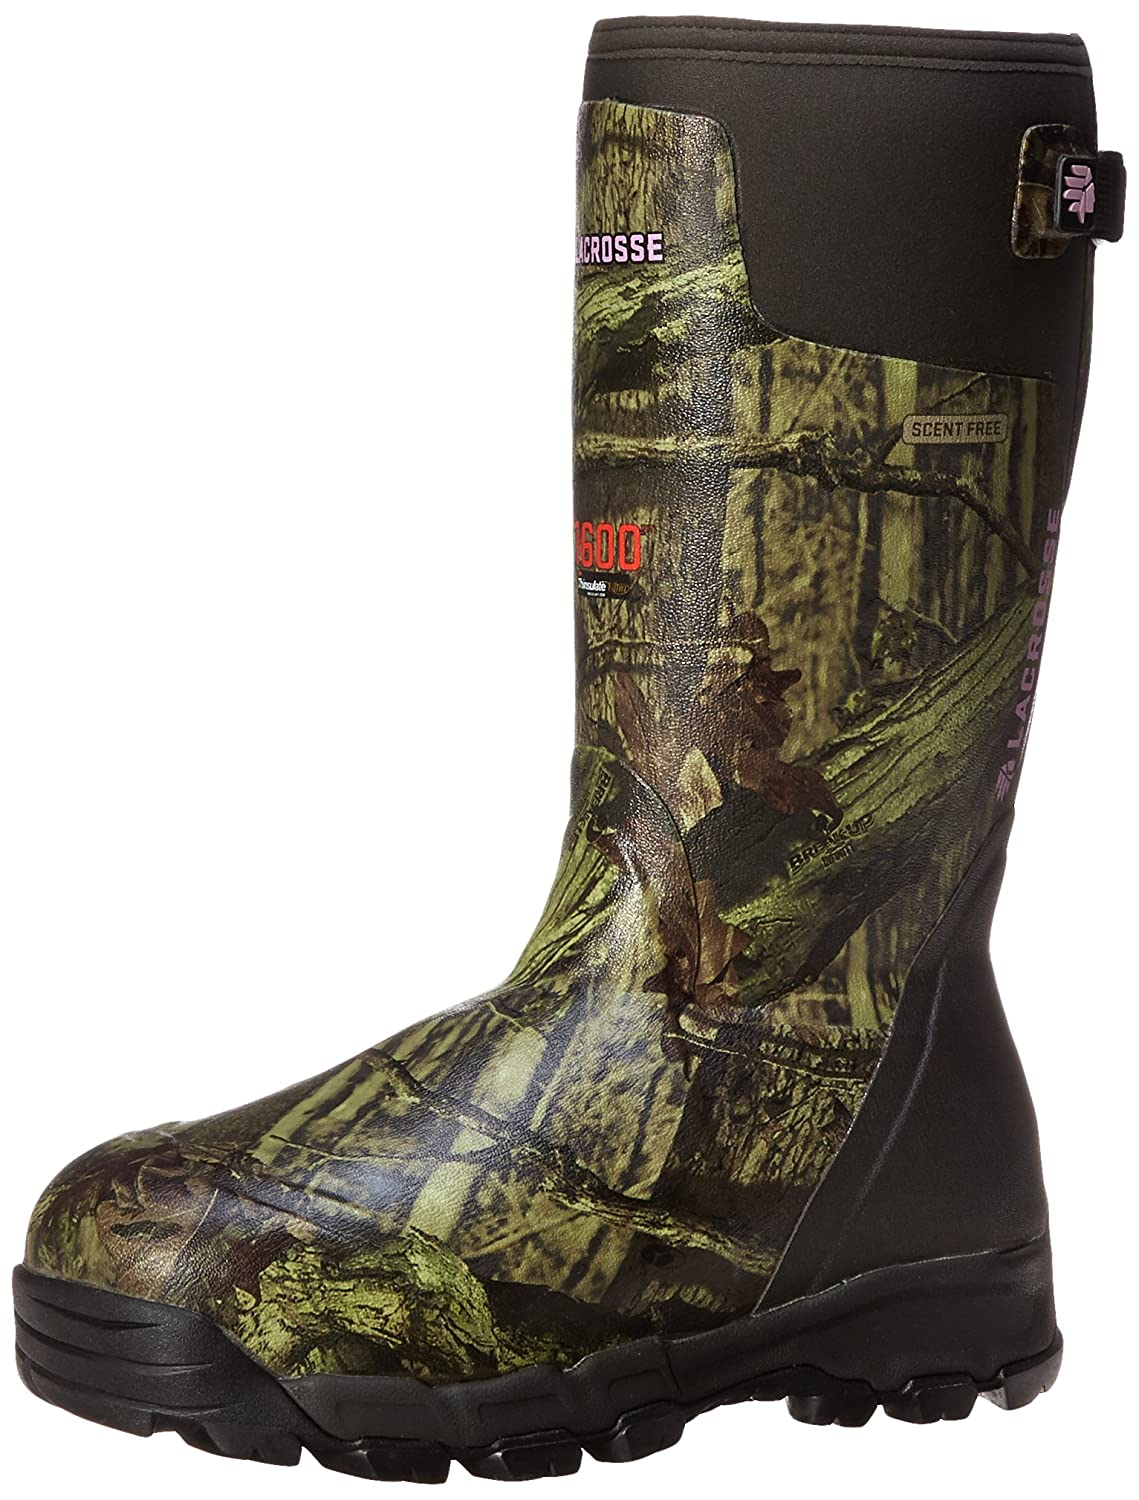 Lacrosse Women's Alphaburly Pro 15 MO 1600G Hunting Boot B00B28RQH4 11 B(M) US|Mossy Oak Break-up Infinity